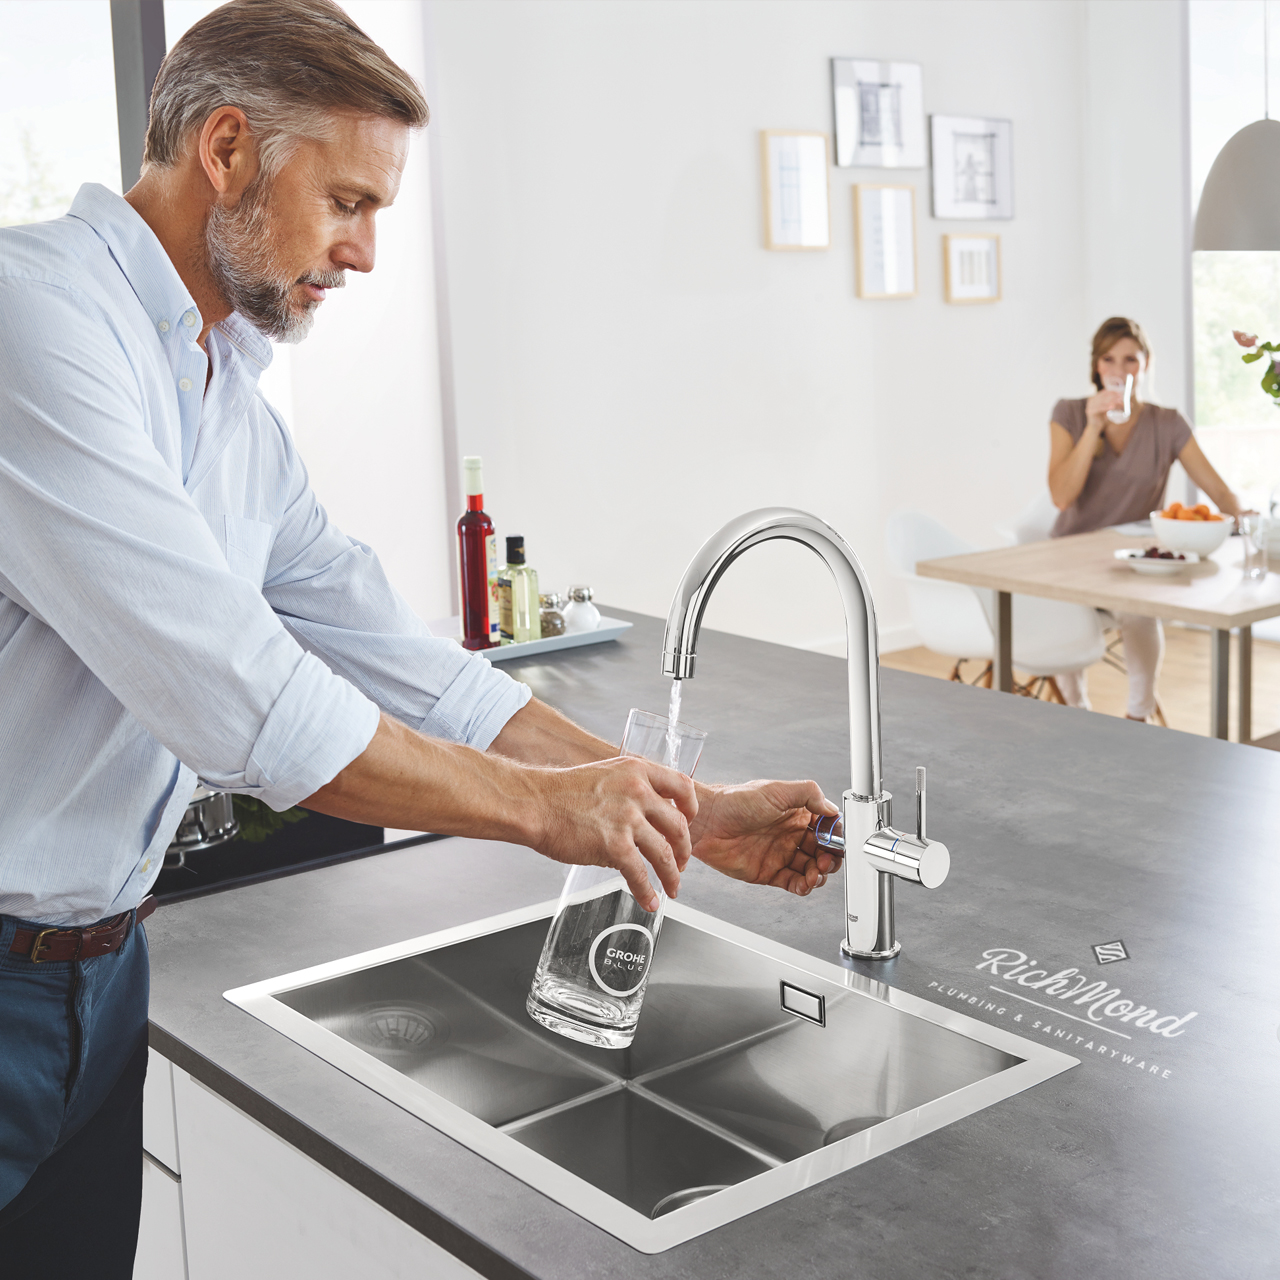 An Eco-Friendly Solution: GROHE BLUE helps say goodbye to plastic bottles